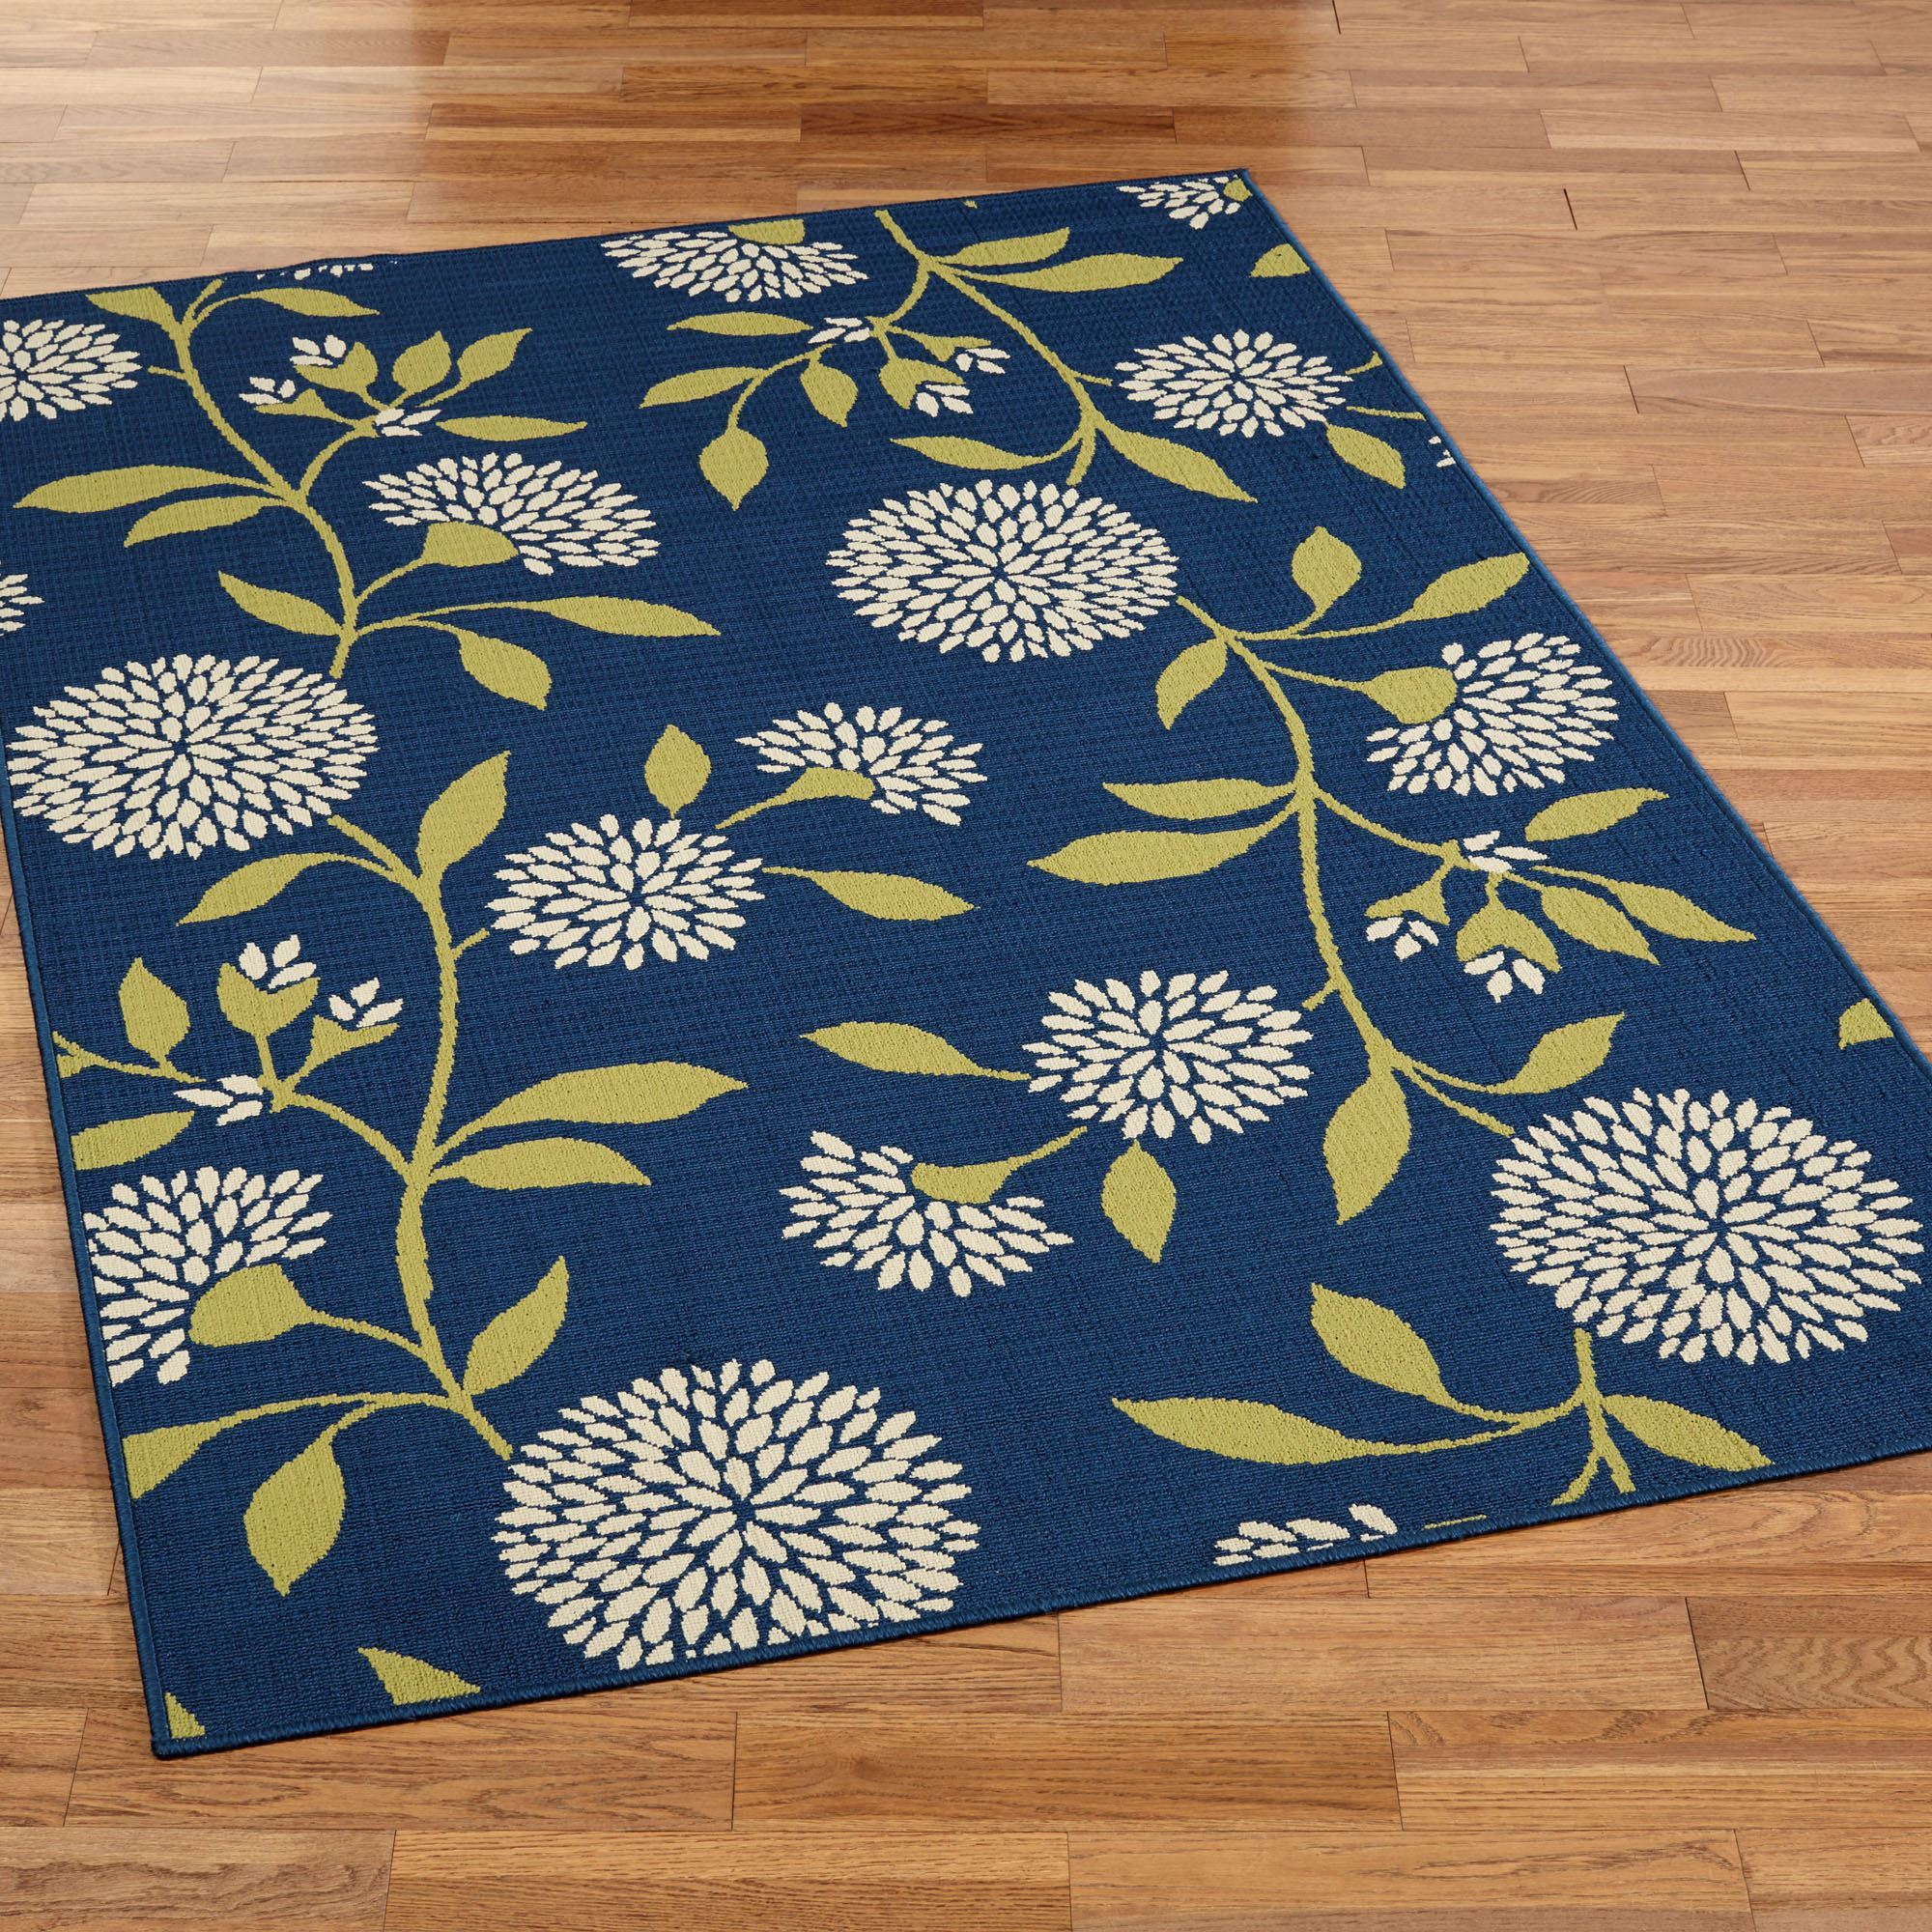 Dandelion Floral Indoor Outdoor Area Rugs